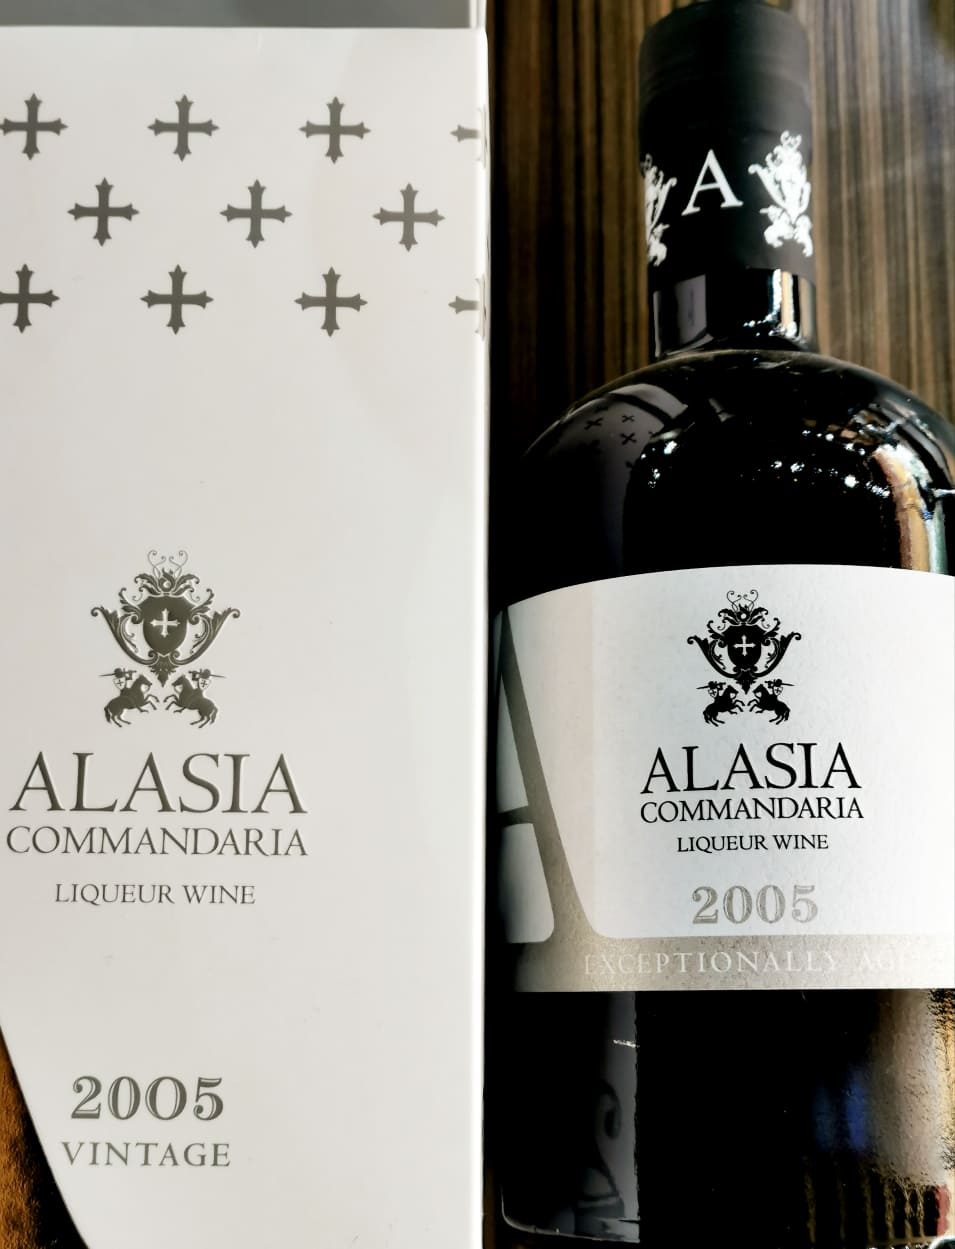 ALASIA COMMANDARIA VINTAGE 2005 EXCEPTIONALLY AGED 50CL